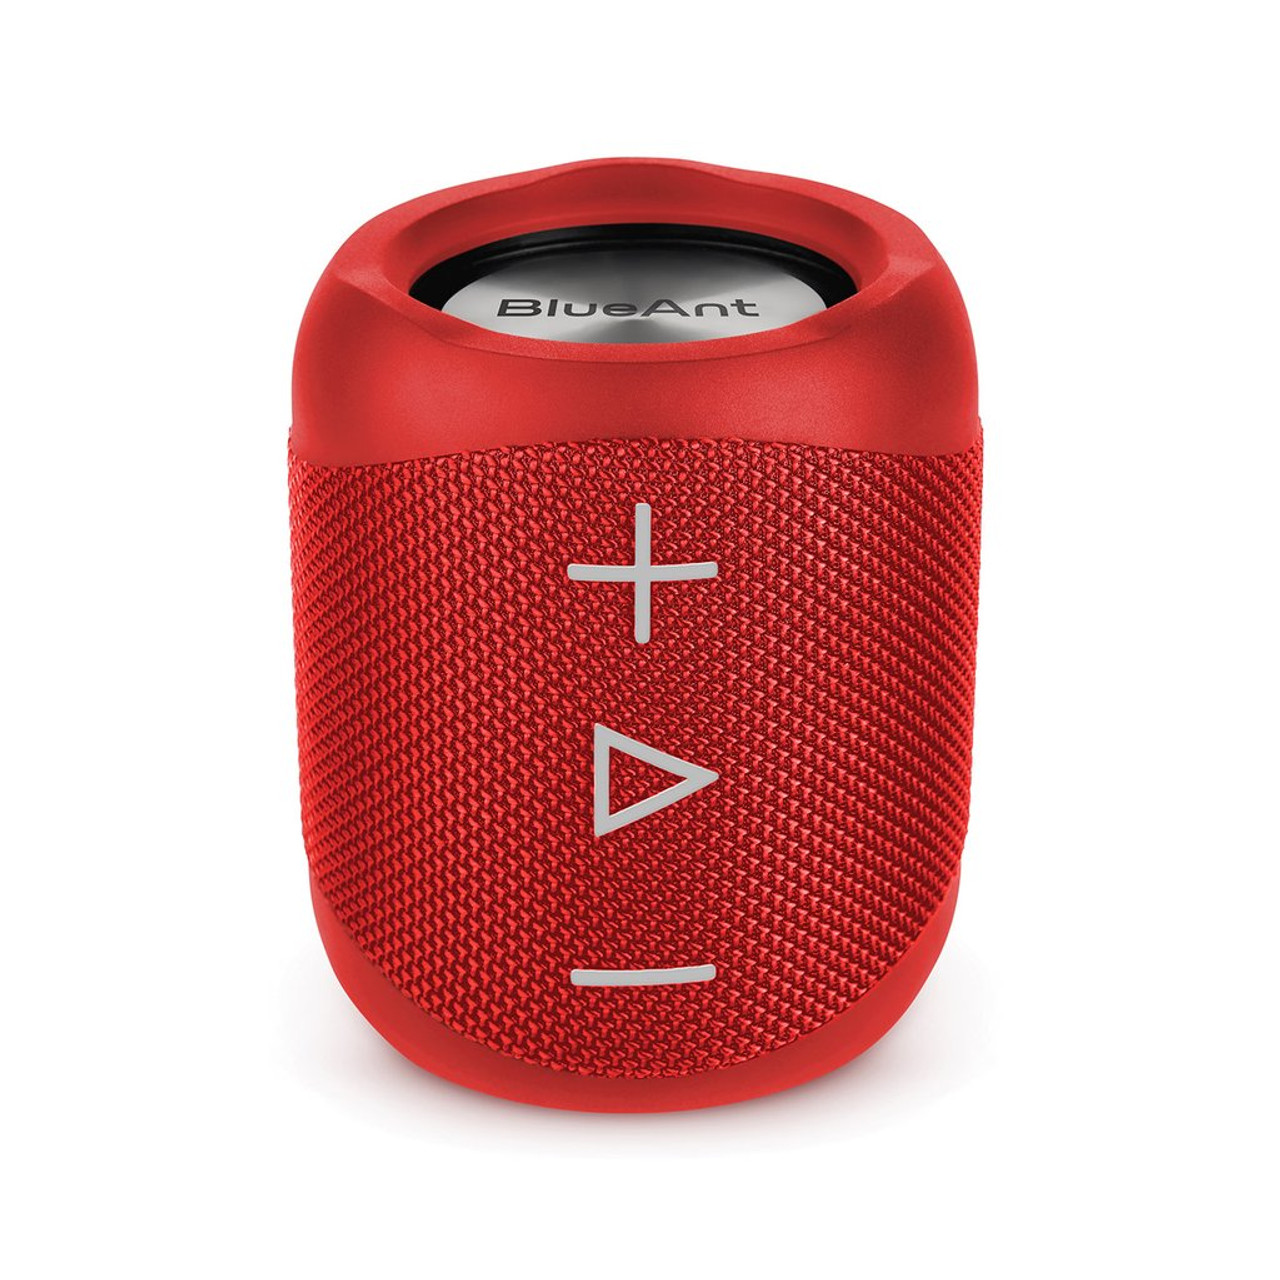 Blueant X1-RD 14W Water Resistant Portable Bluetooth Speaker - Red